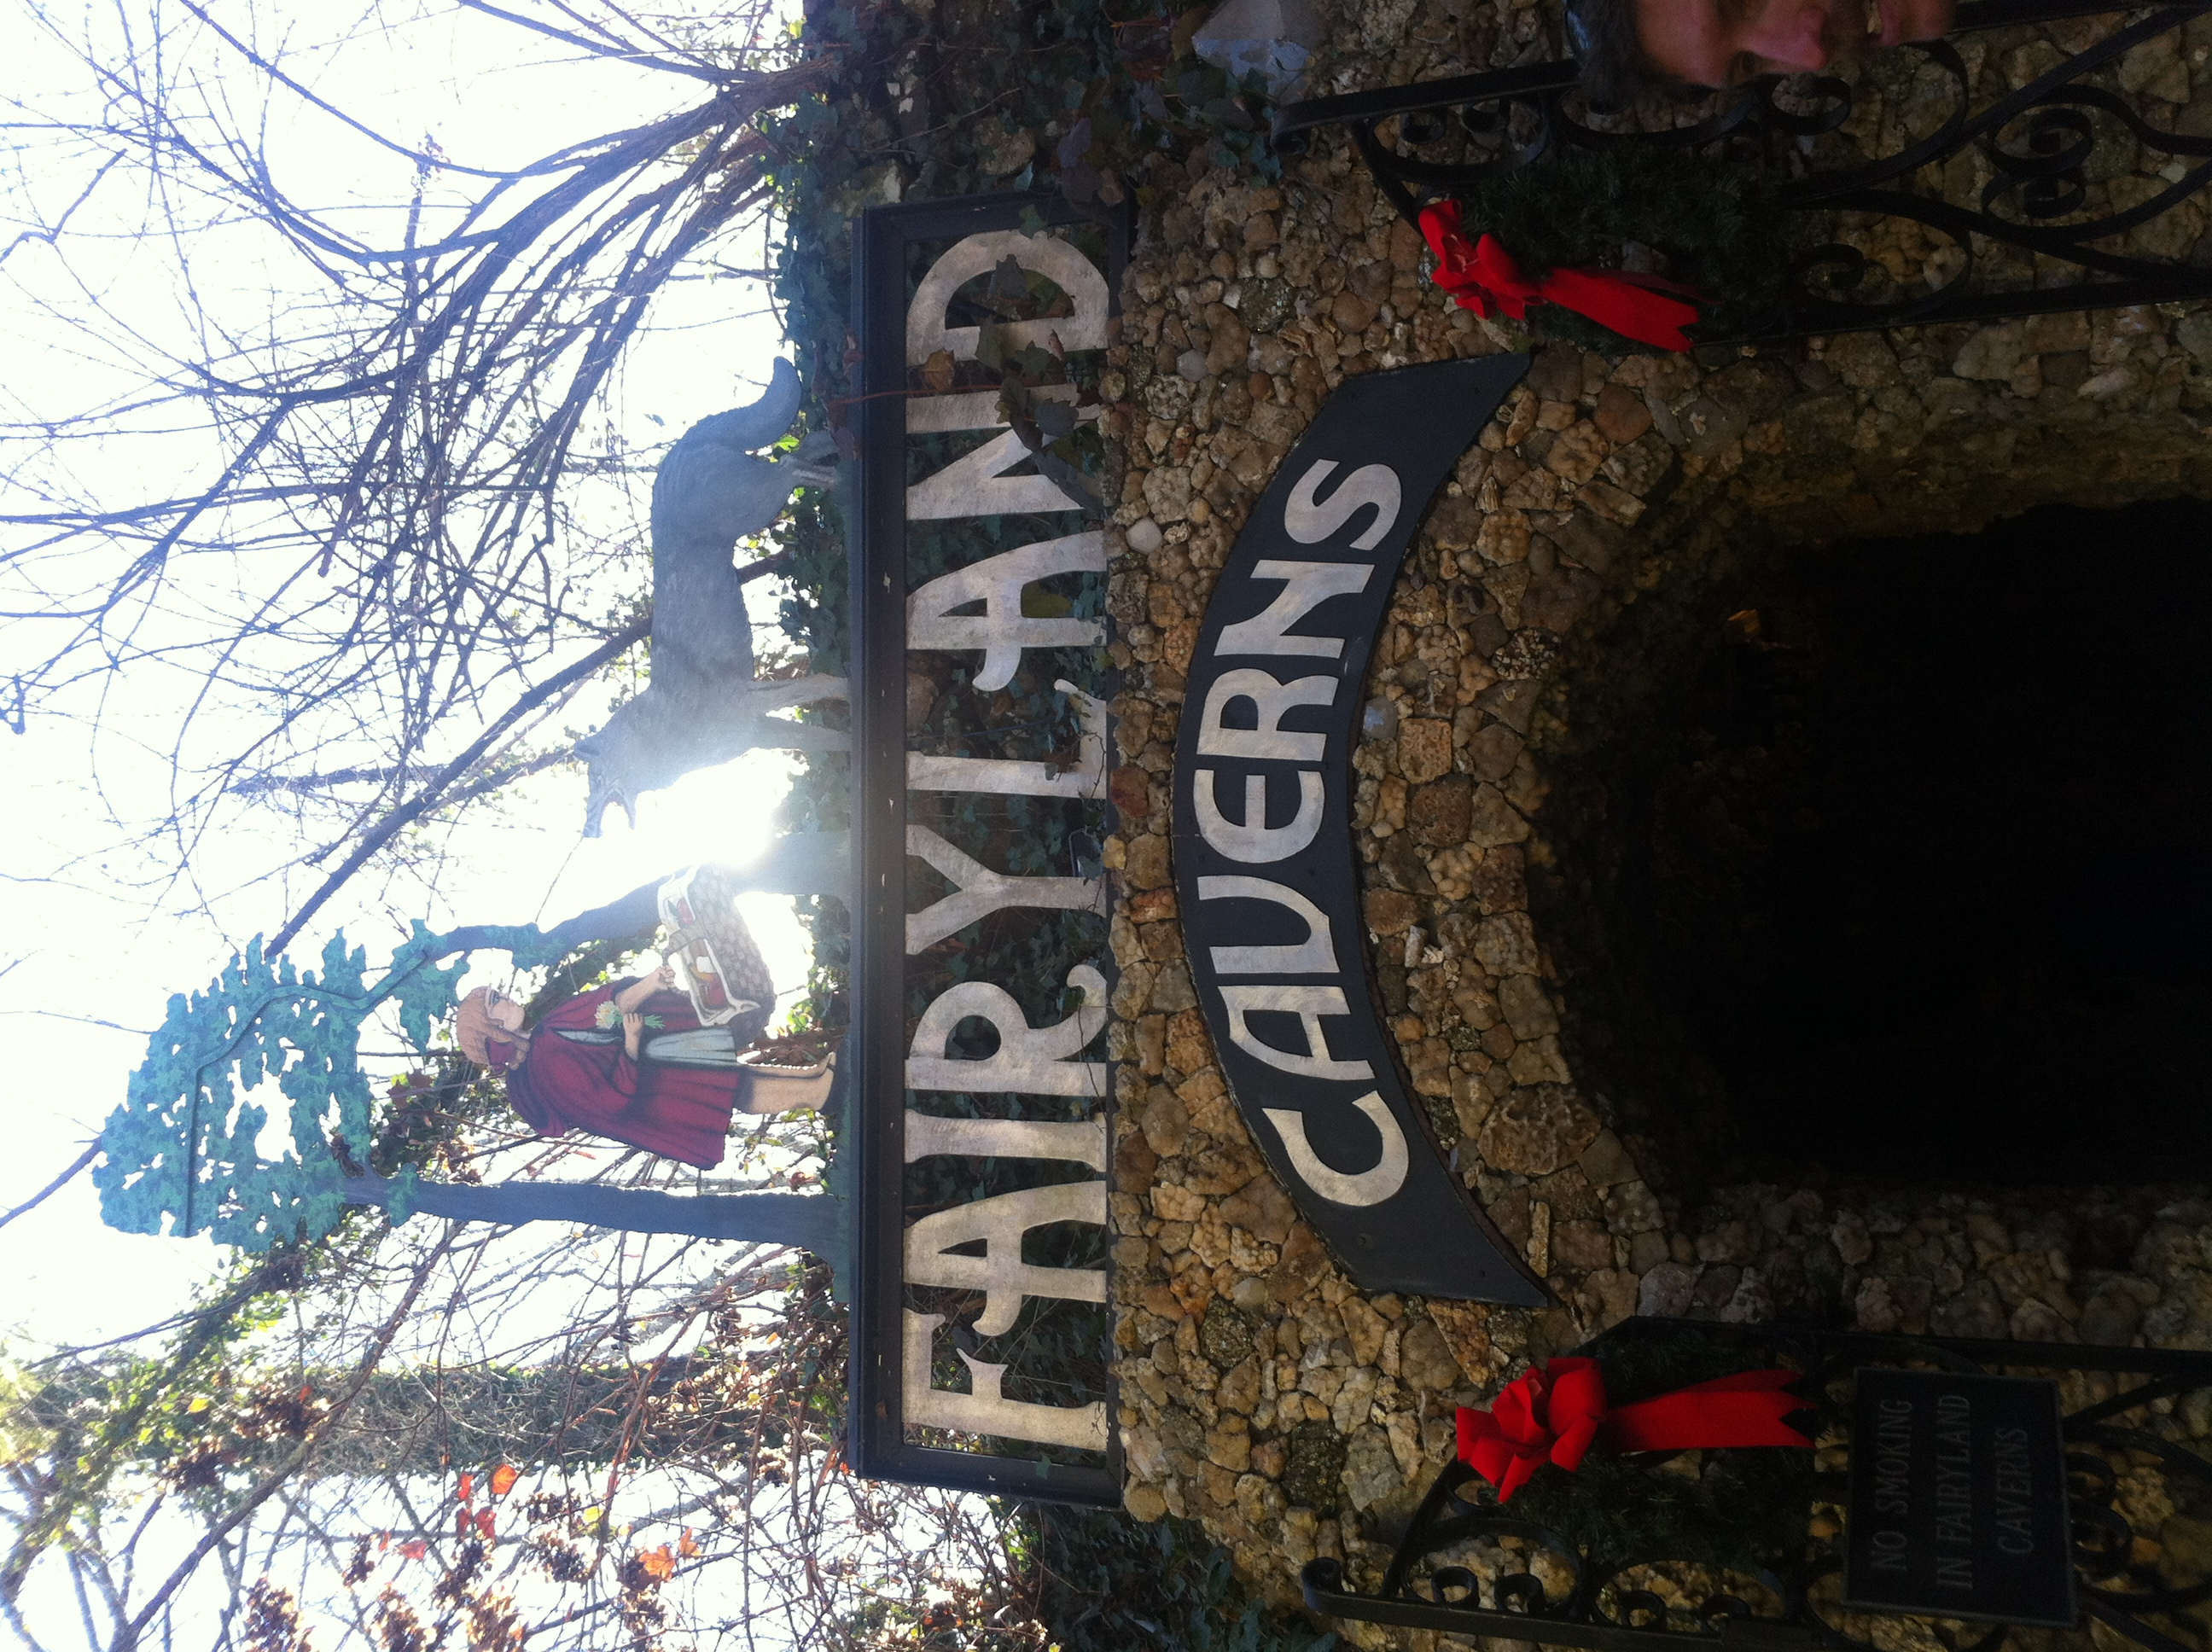 Fairyland Caverns at Rock City, a stop on our epic holiday road trip.